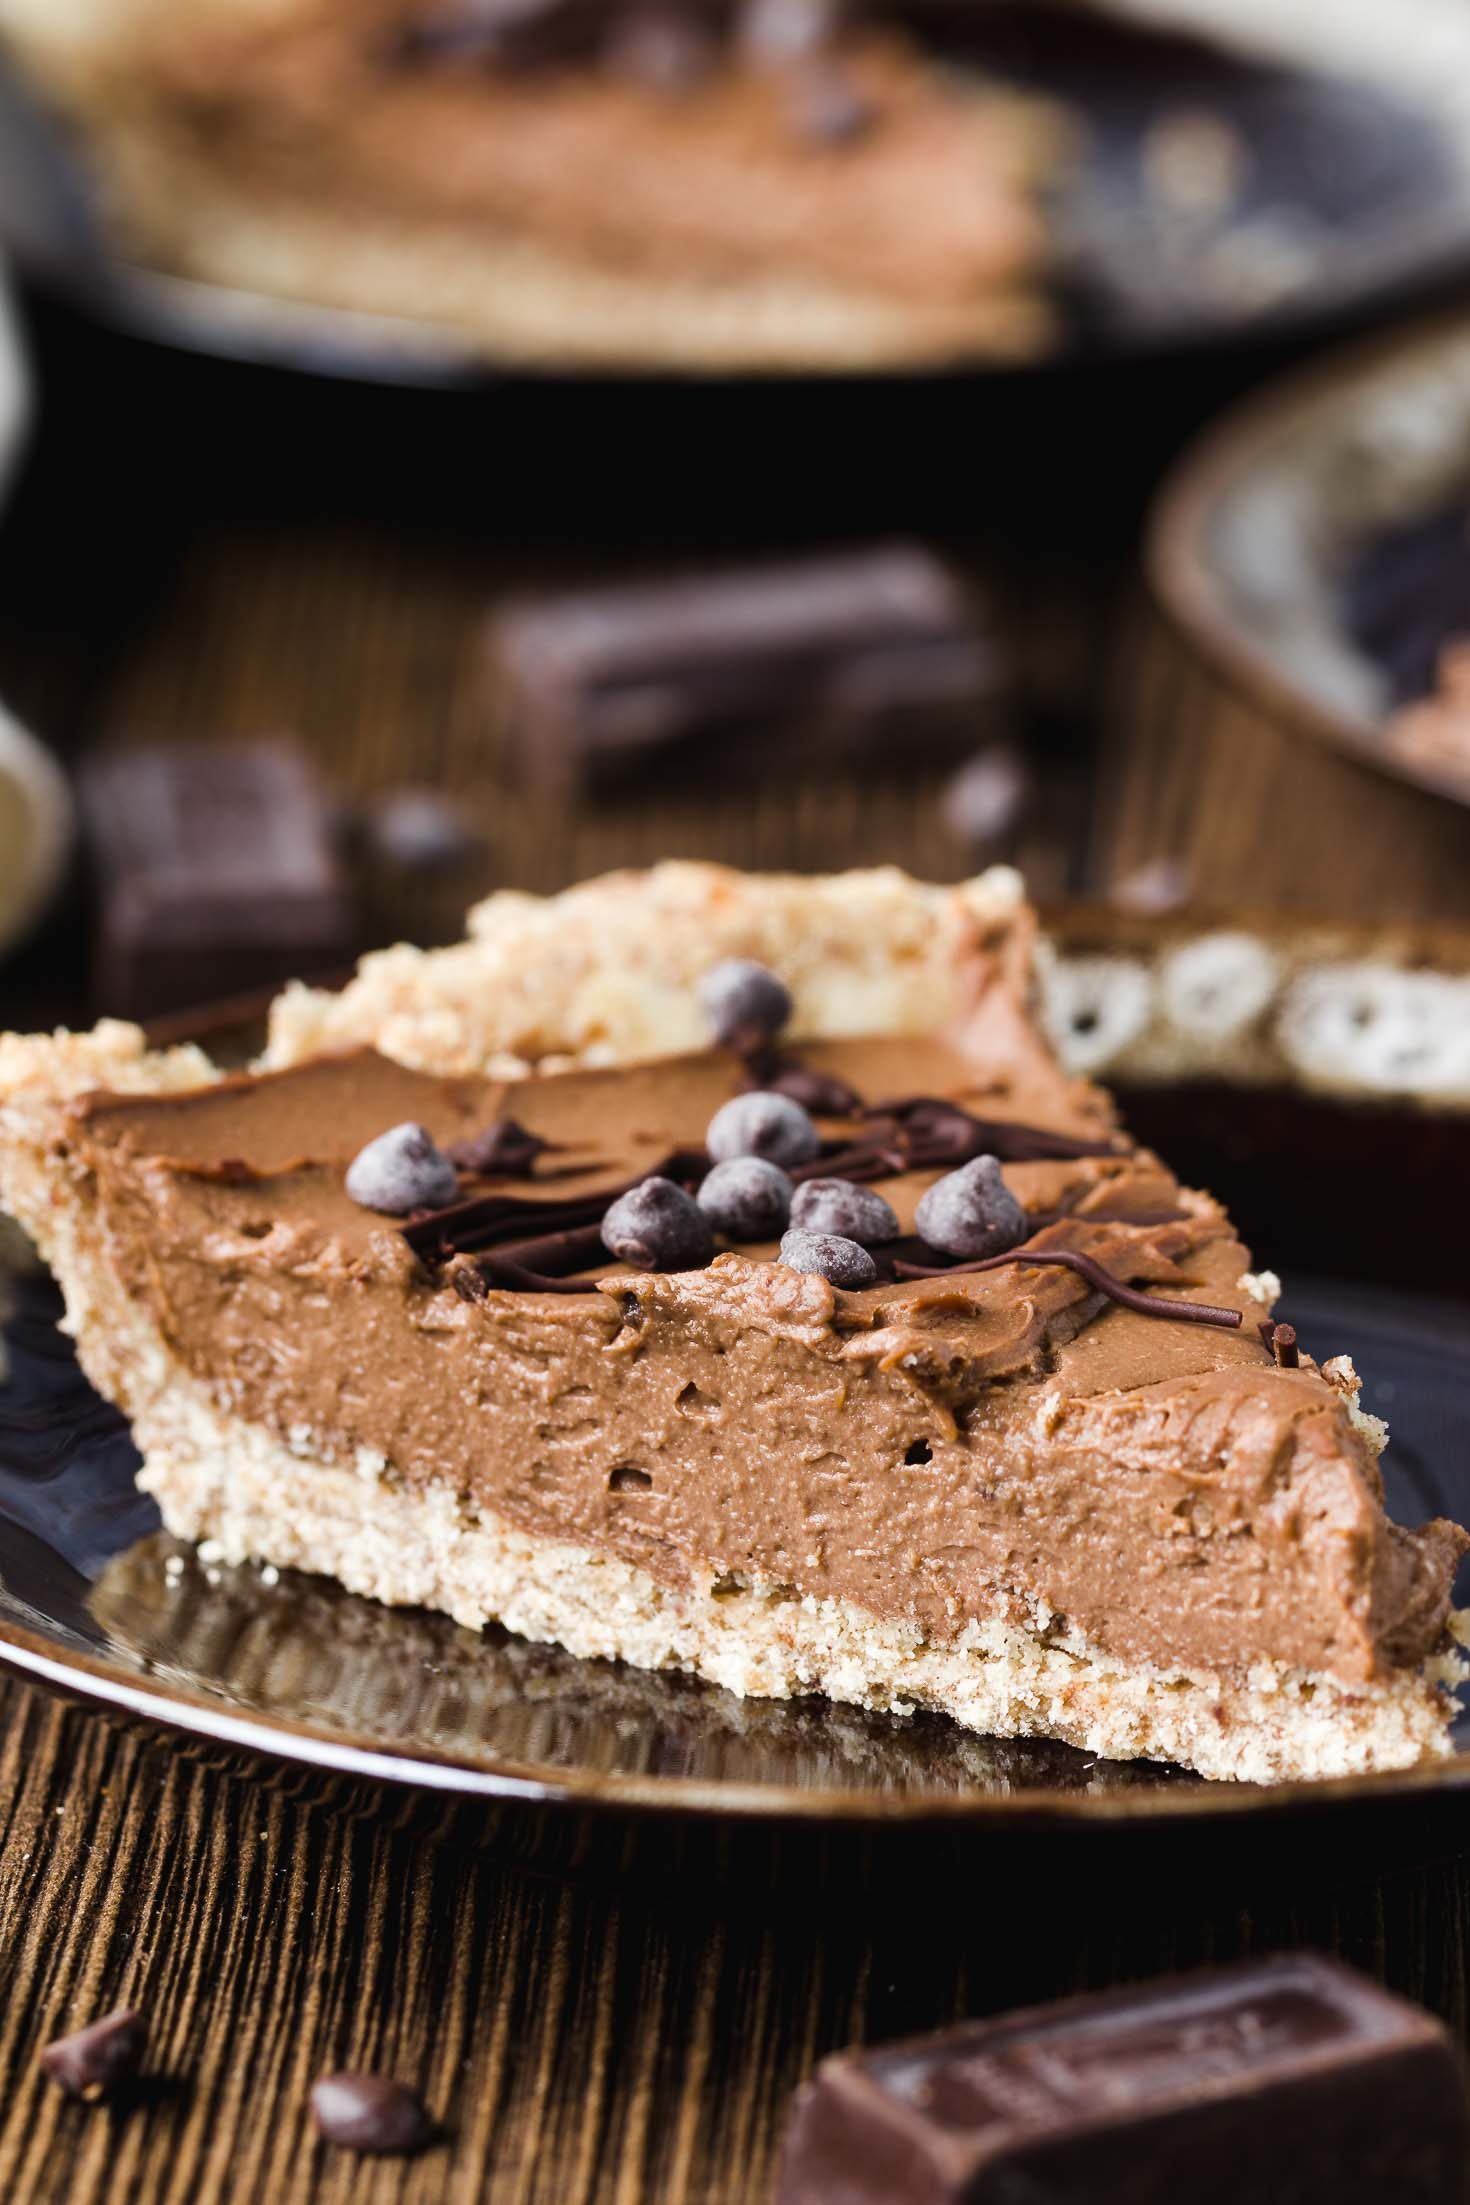 Vegan Cashew Butter Silky Chocolate Pie-a piece of pie in a brown plate, garnished with melted chocolate and chocolate chips